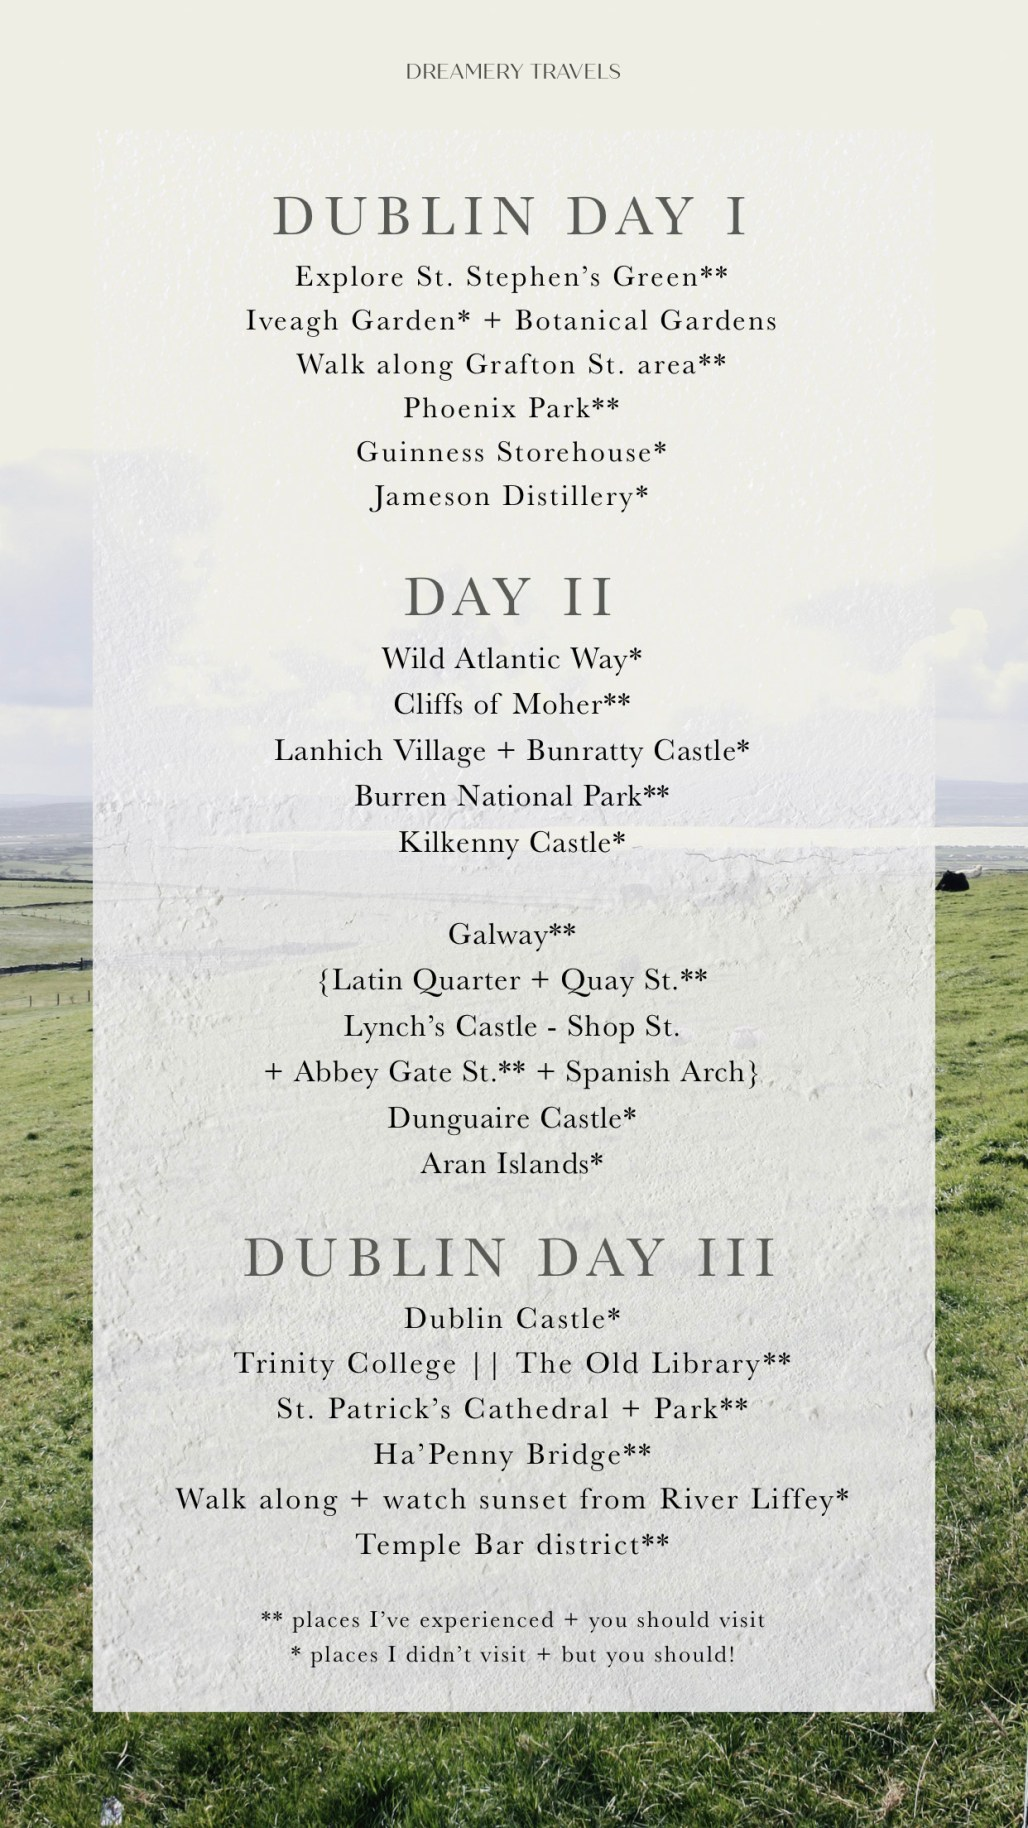 What to Eat, See & Do in 3 Days in Ireland || Dublin Based || Dreamery Travels